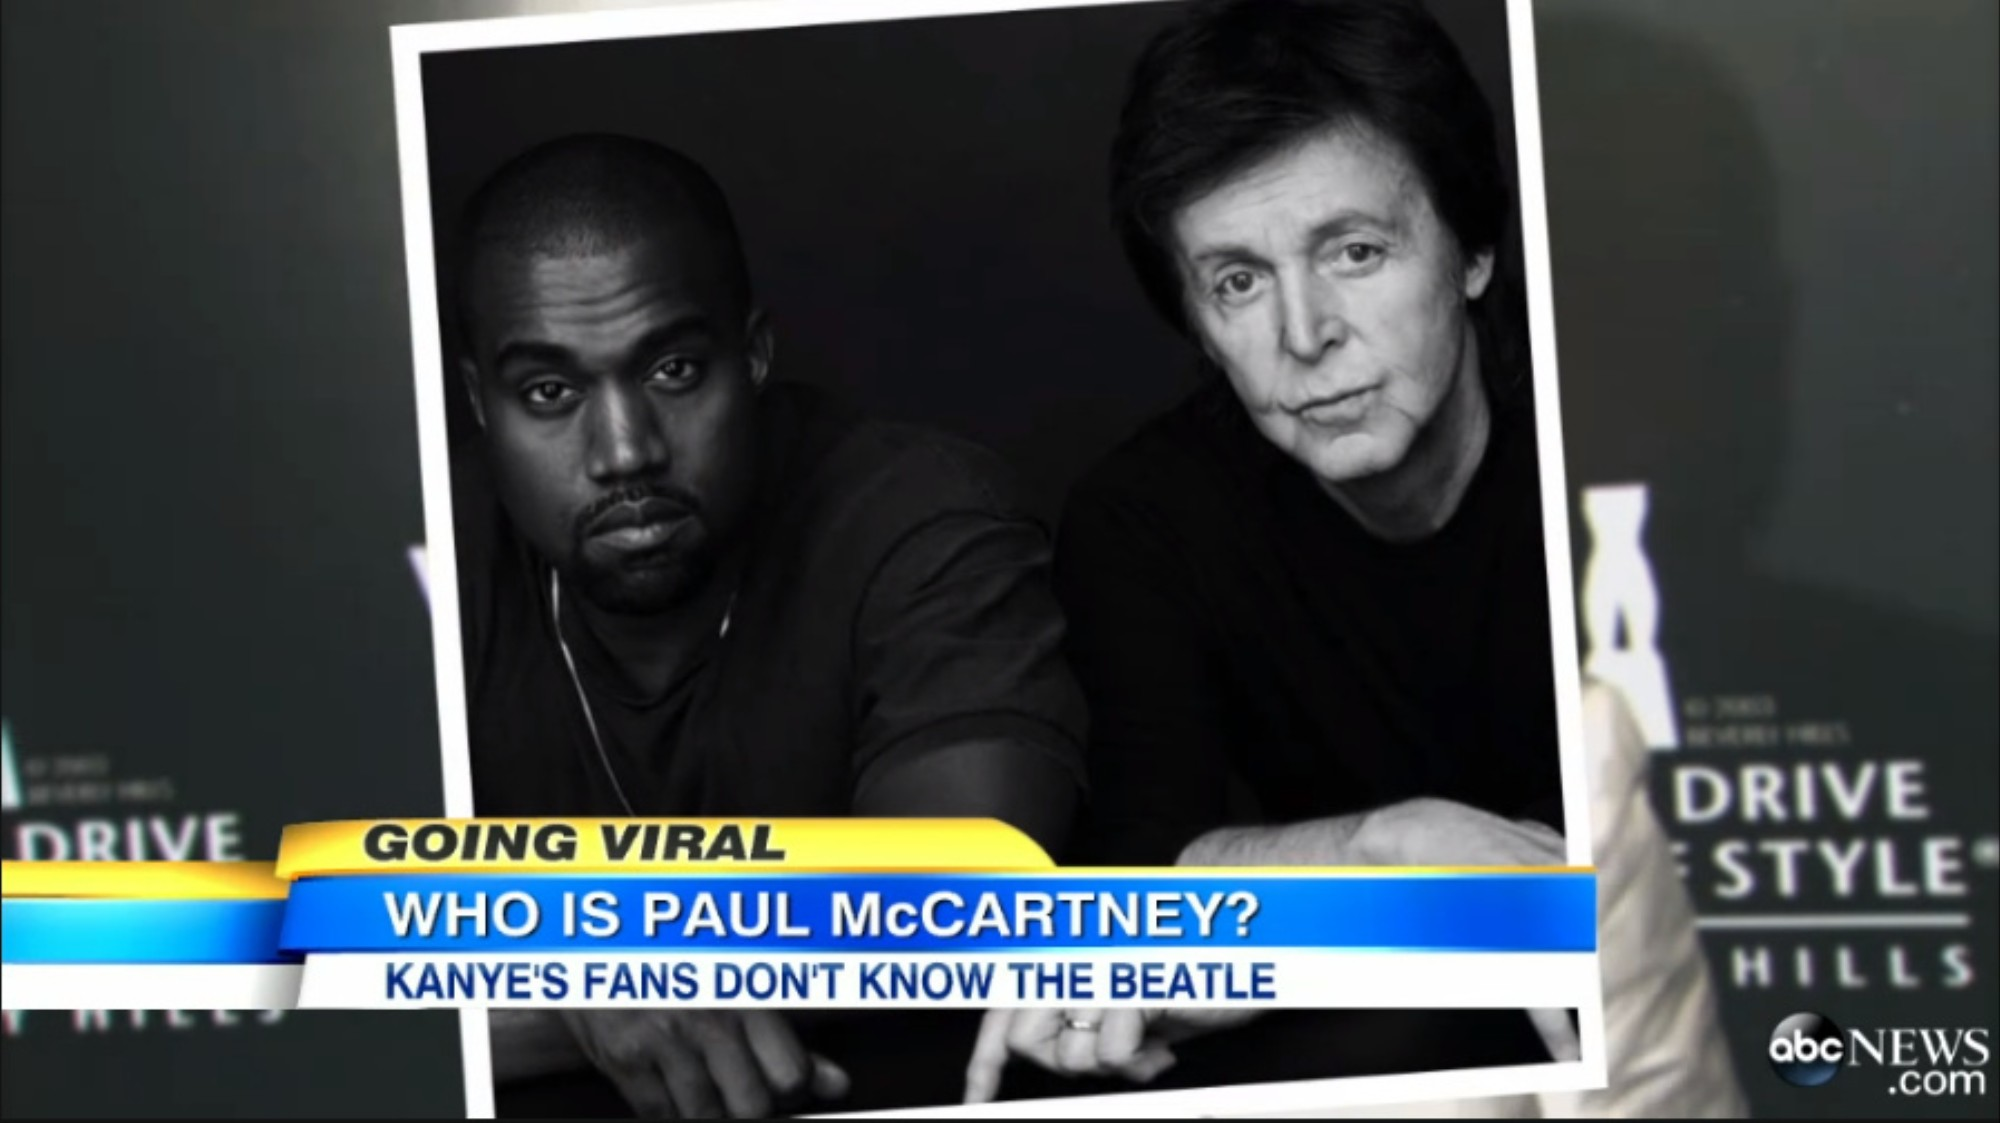 The Media Got Trolled Into Thinking Kanye West Fans Don't